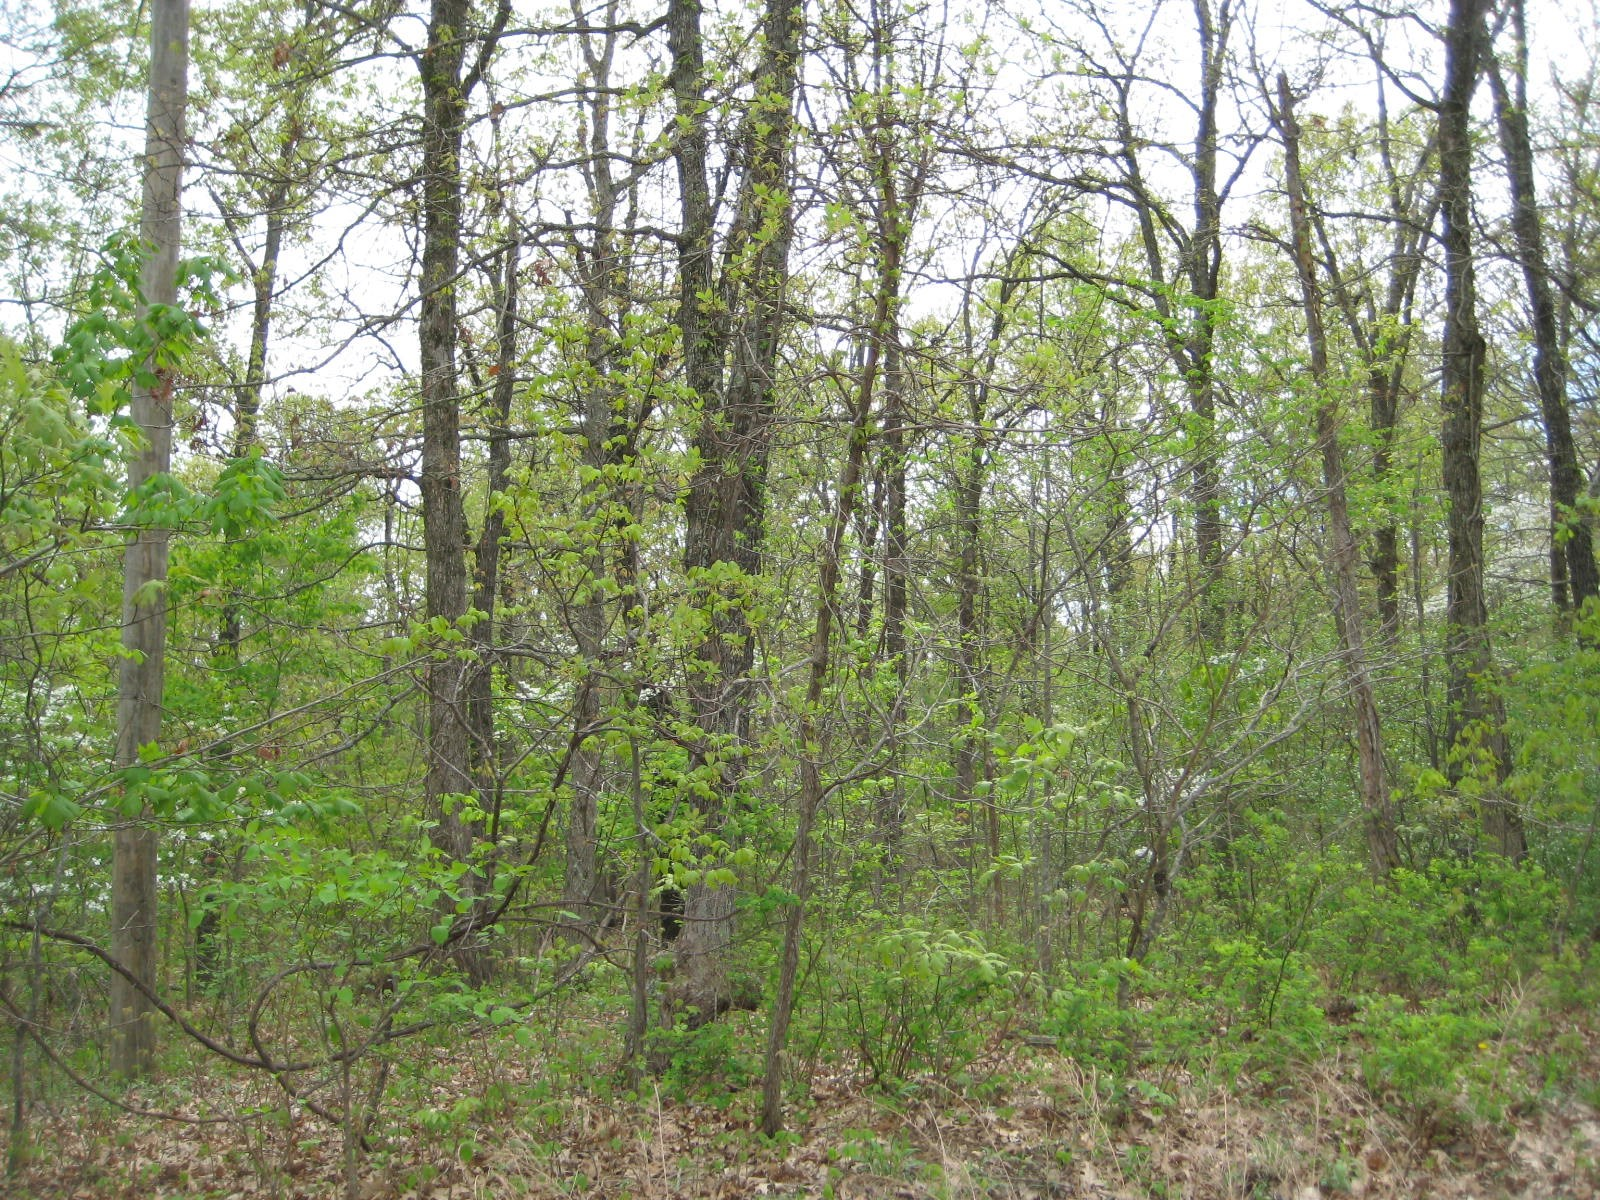 Land for Sale  Hunting,Camping, Building or Recreation! 7Acr